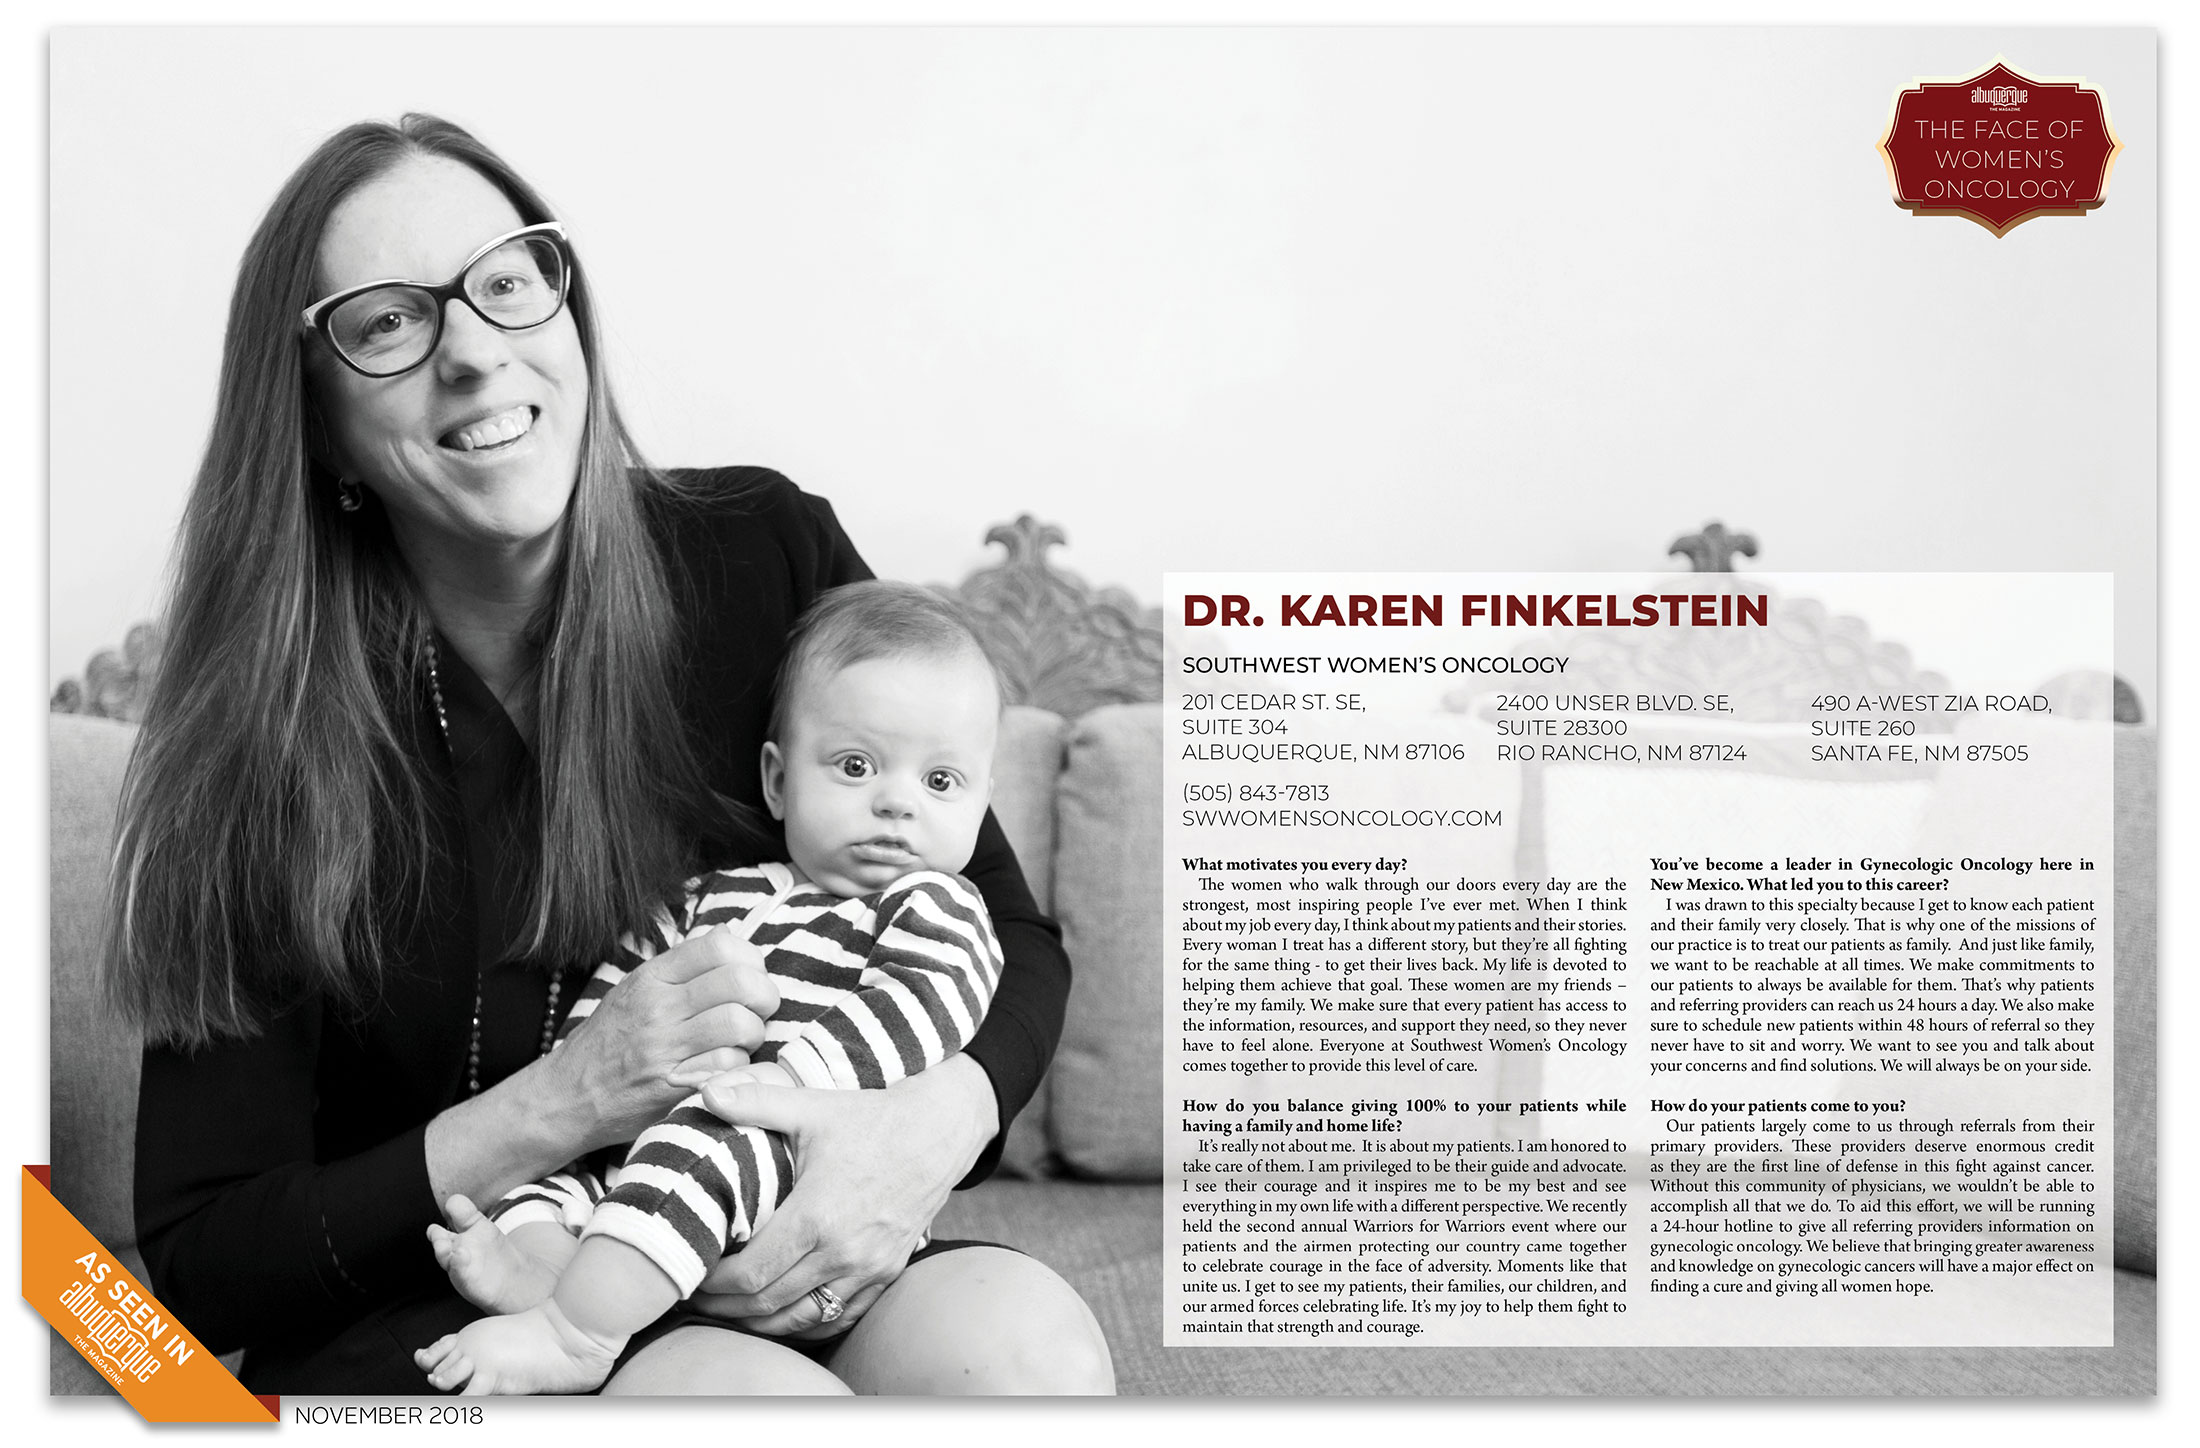 Dr. karen finkelstein is New Mexico's leading women's oncologist